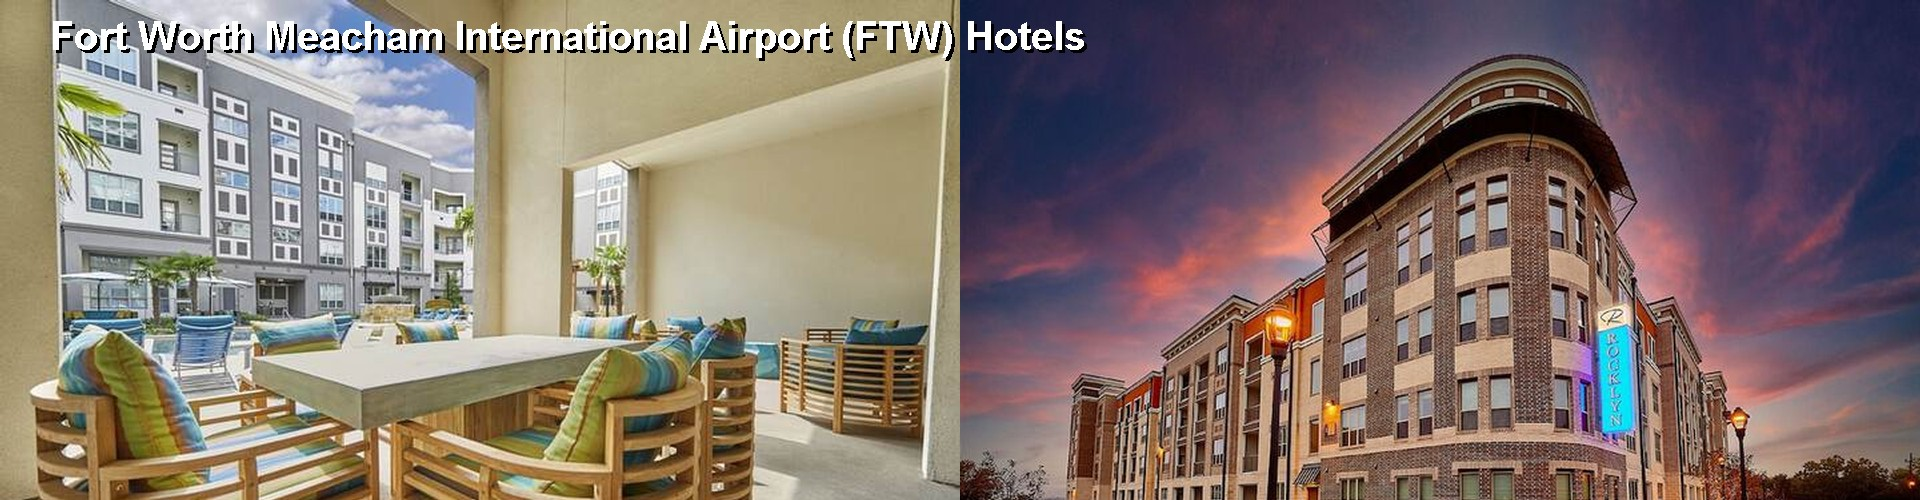 5 Best Hotels near Fort Worth Meacham International Airport (FTW)